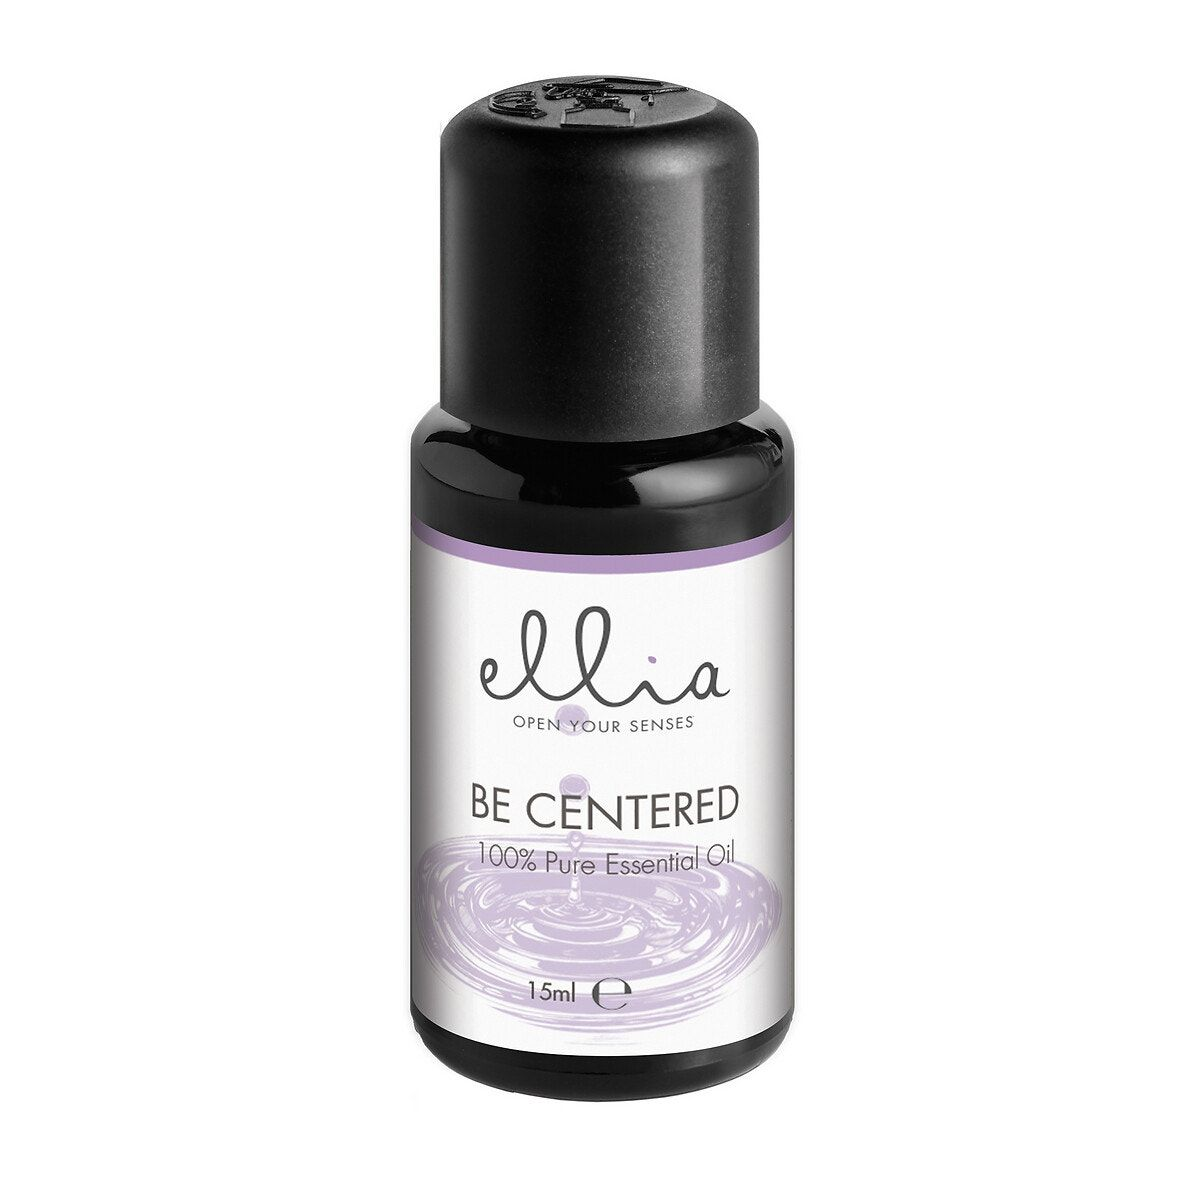 This product will be dispatched by one of our trusted suppliers. You'll be contacted by their selected courier about your delivery.be centered essential oil.with notes of bergamot, orange, and patchouli, be centered is a calming blend that's perfect for meditation. Diffuse it while you set intentions for the day or engage in a relaxing yoga routine. You'll love its grounding, citrusy-yet-spicy fragrance. All of ellia's signature blends are crafted by an aromatherapy expert using only 100% pure